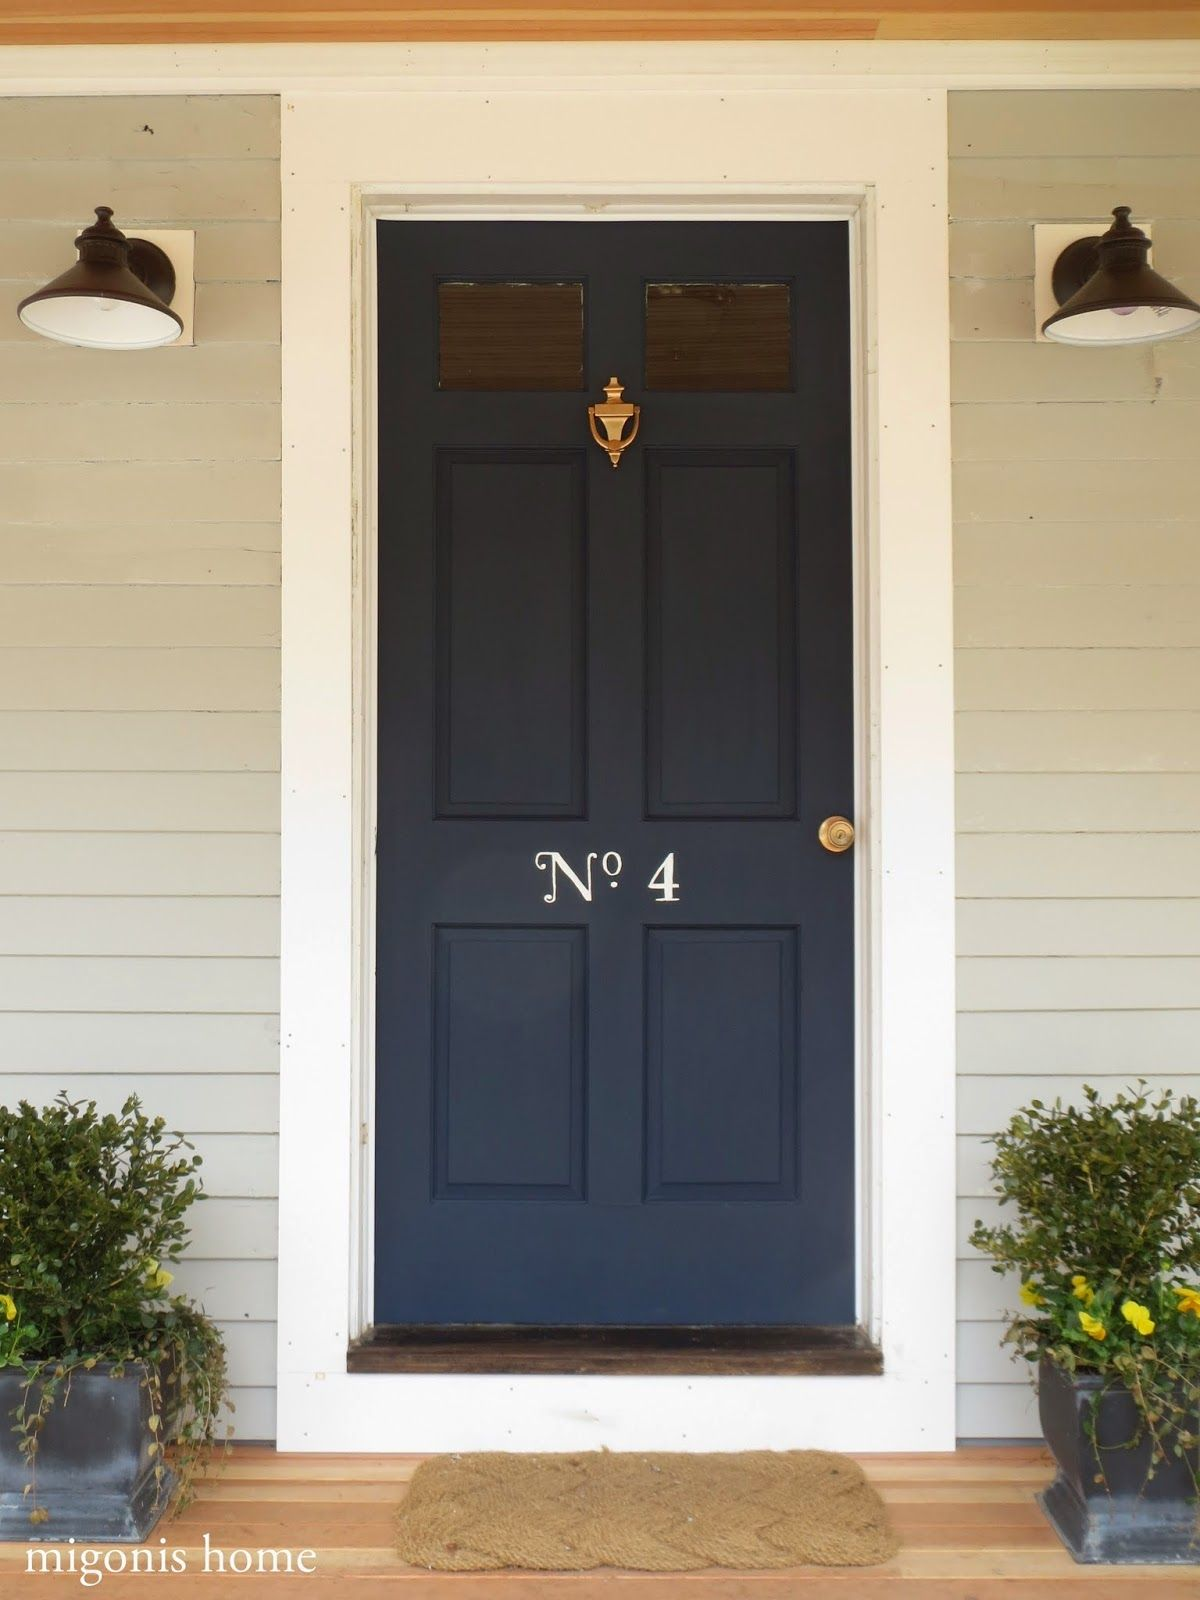 Increase curb appeal by painting charming house numbers on your exterior colors rubansaba